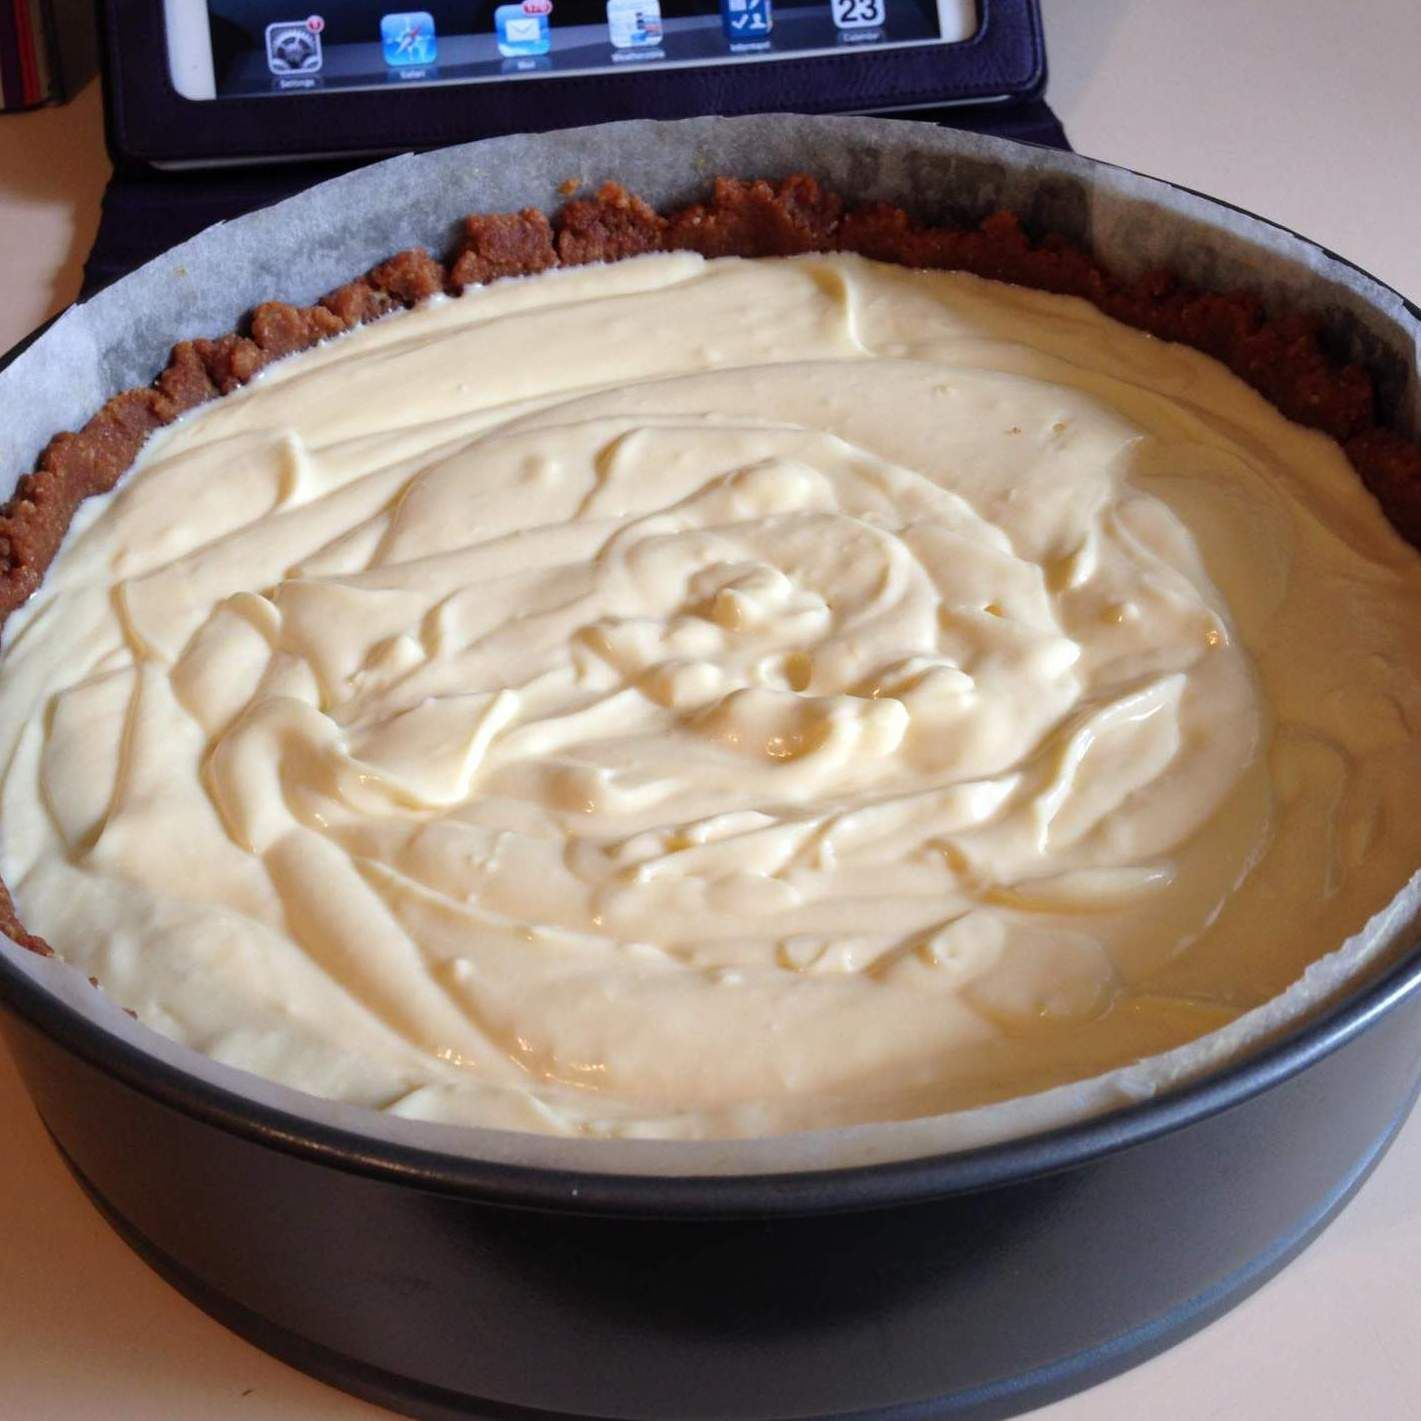 Kuchen Im Thermomix Backen Easy Peasy No Bake Lemon Cheesecake Official Thermomix